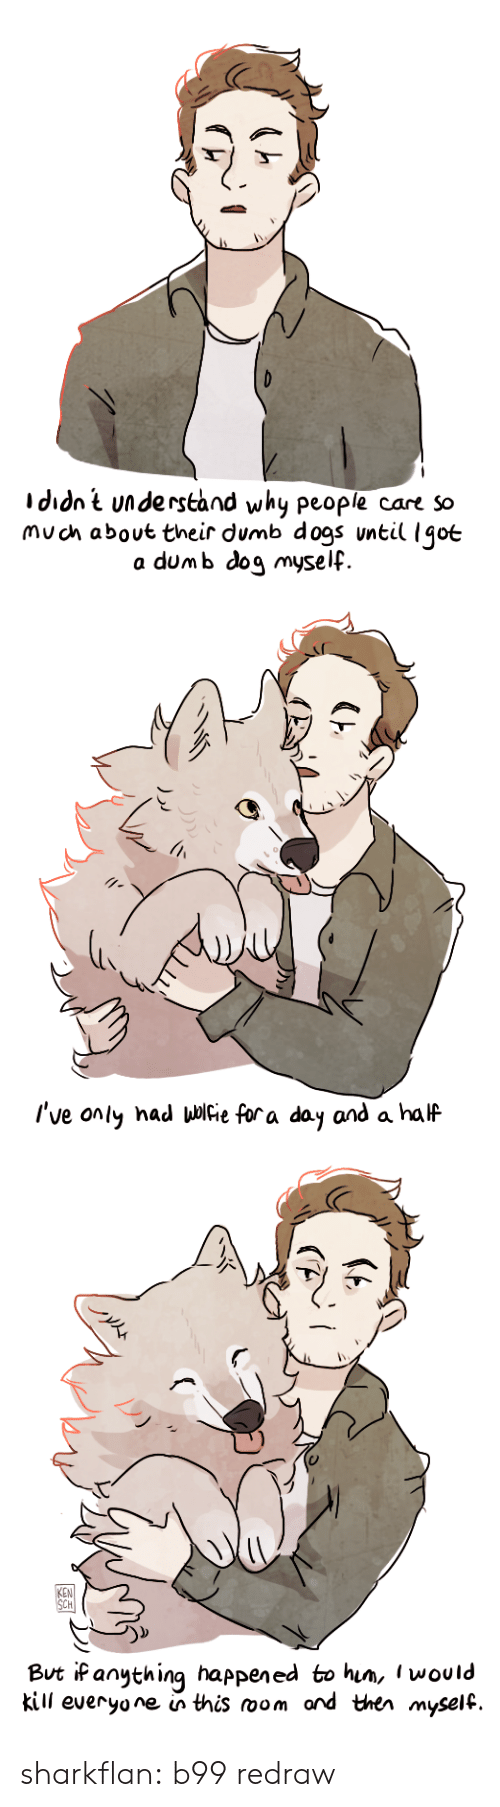 Dogs, Dumb, and Ken: Ididnt understand why people care so  muoh about their dumb dogs vntil Igoe  a dum b dog myself.   I've only had μ Fie fora day and a half   0  KEN  CH  But iP anything happened to him, l would  kill everyone in this room ord ther myself. sharkflan:  b99 redraw